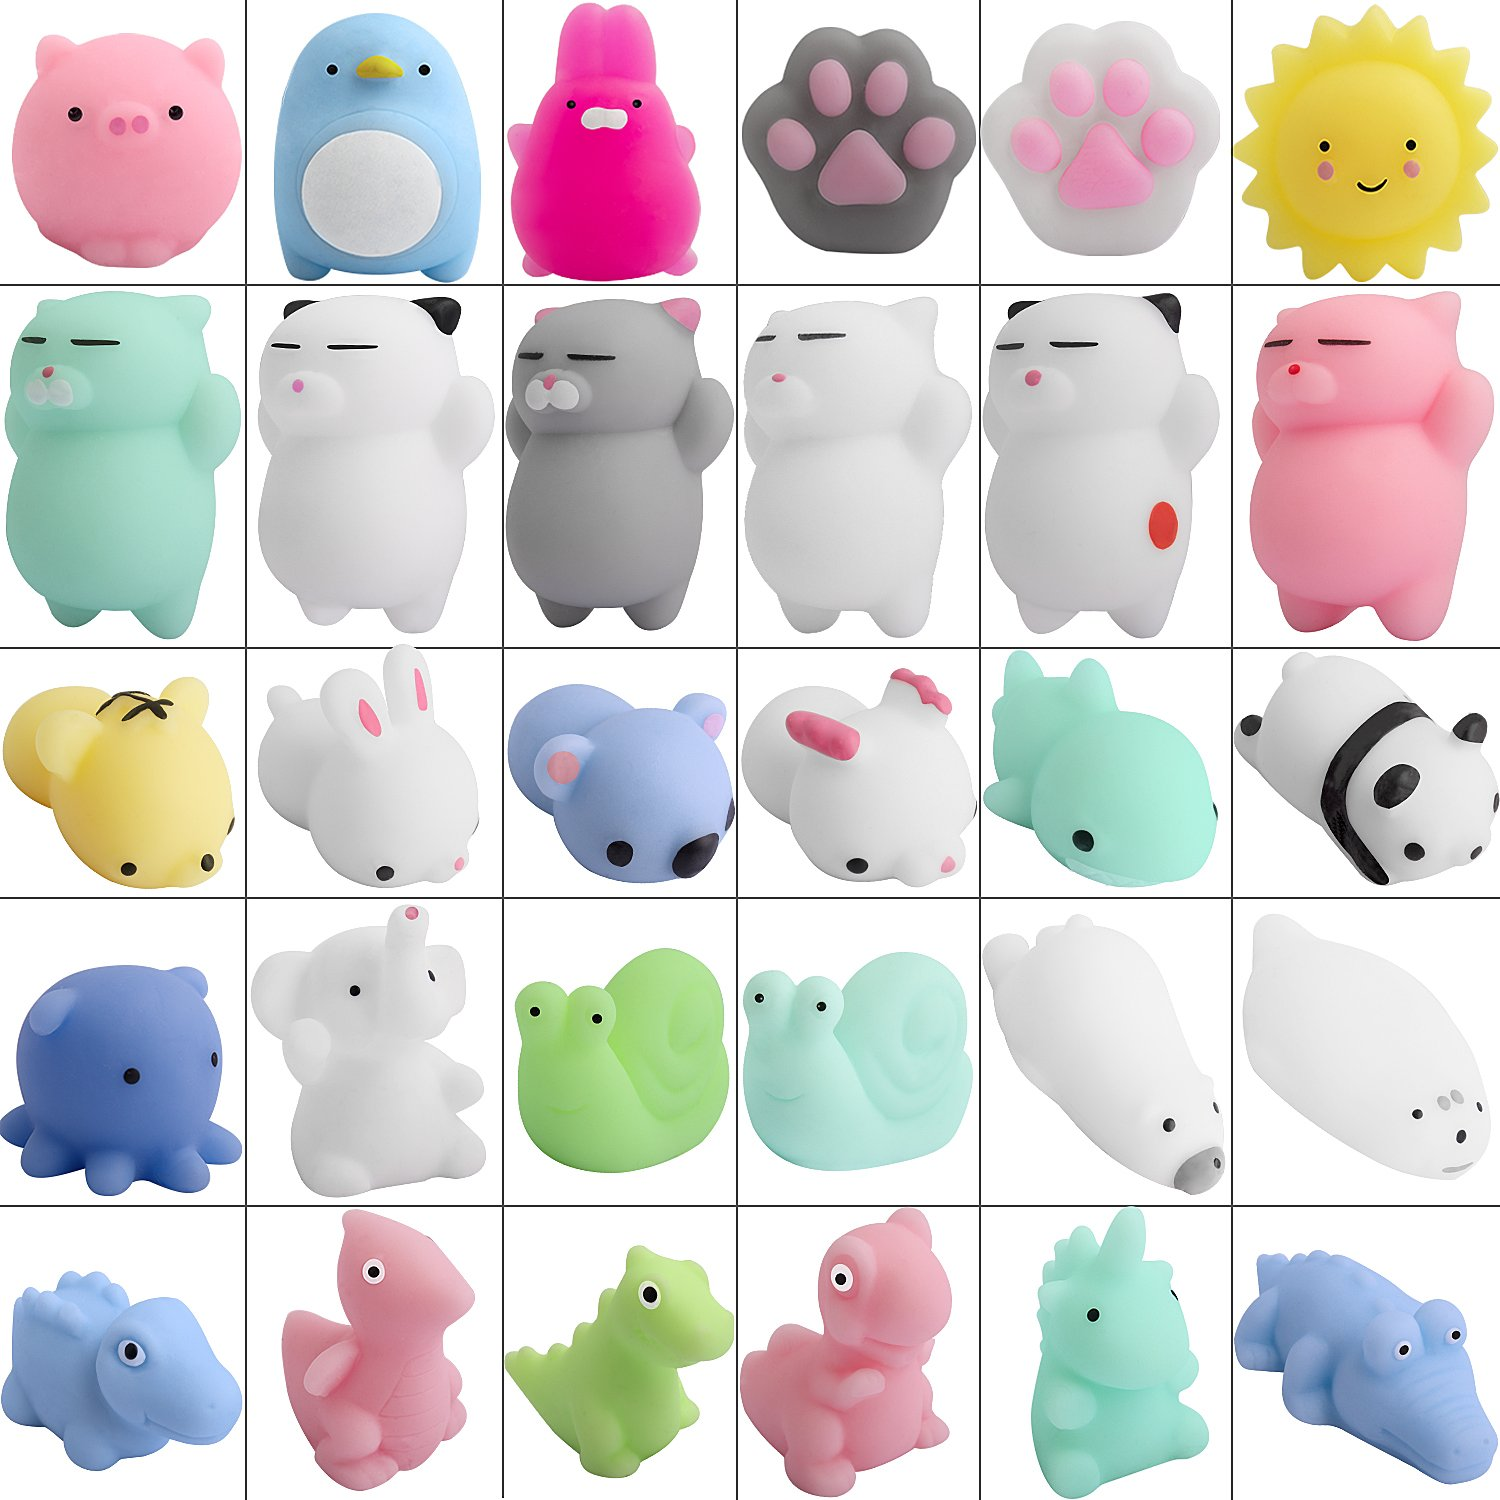 Mini Squishy Toys Mochi, Hicdaw 30 Pcs Mochi Squishy Squishies Mini Stress Cat Squishy Stress Squishies Kawaii Mochi Cat Animal Squishies Stress Relief Toys Squishy Cat Mochi Animals Squishy Soft